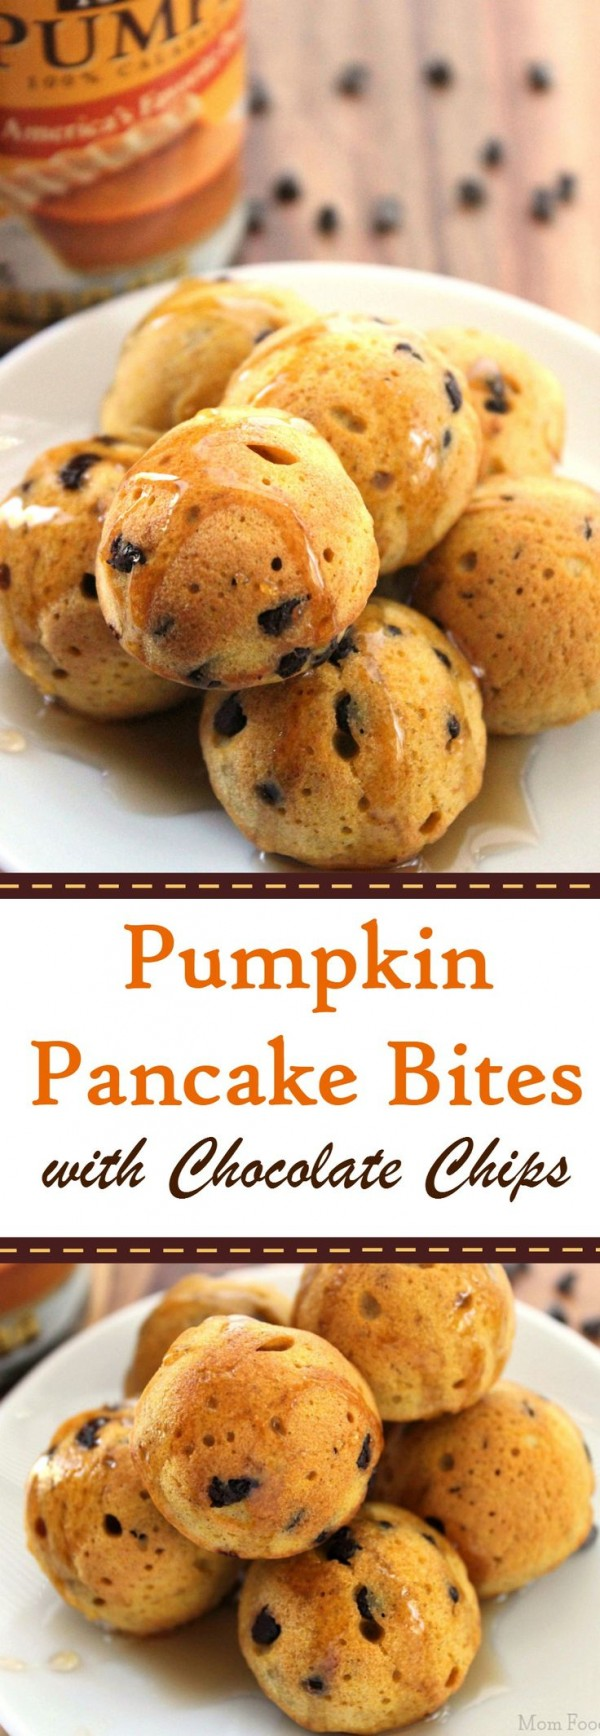 Get the recipe Pumpkin Pancakes Bites with Chocolate Chips @recipes_to_go